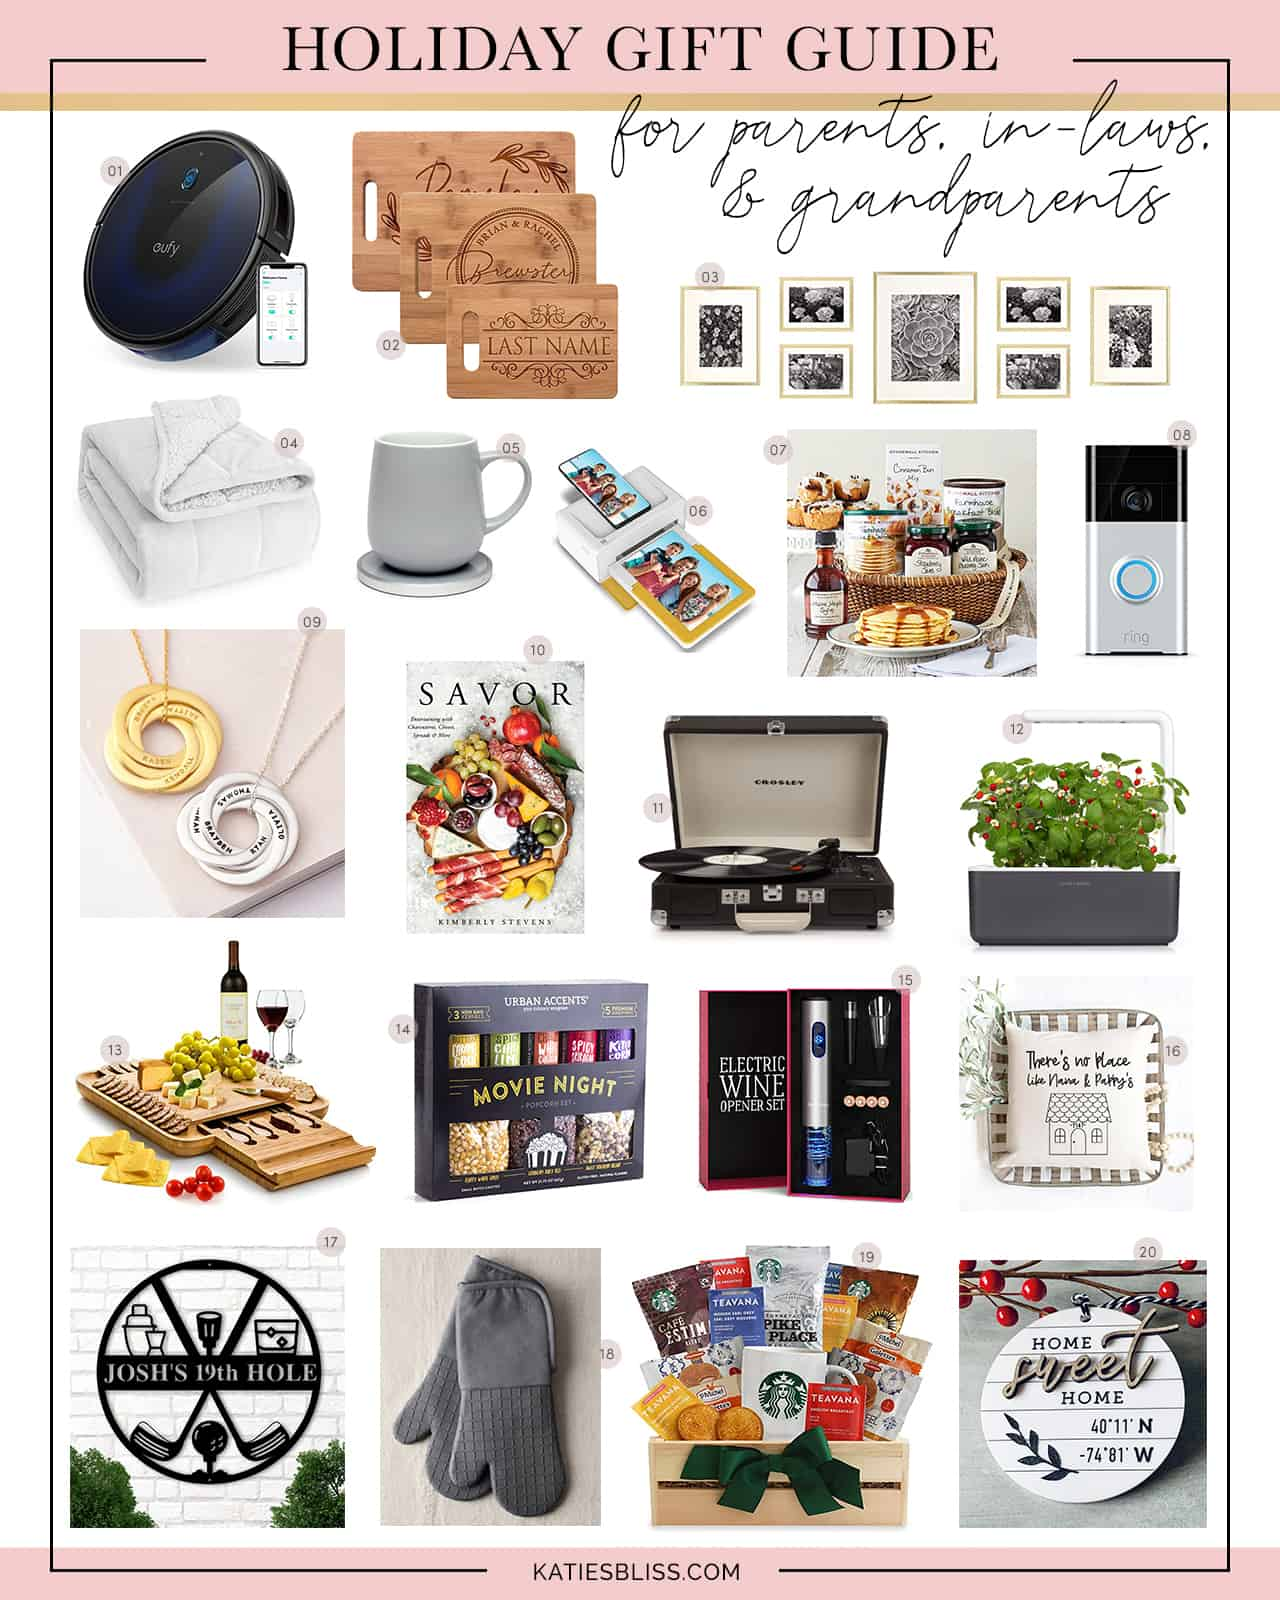 Katies Bliss Gift Guide For Parents Grandparents In Laws